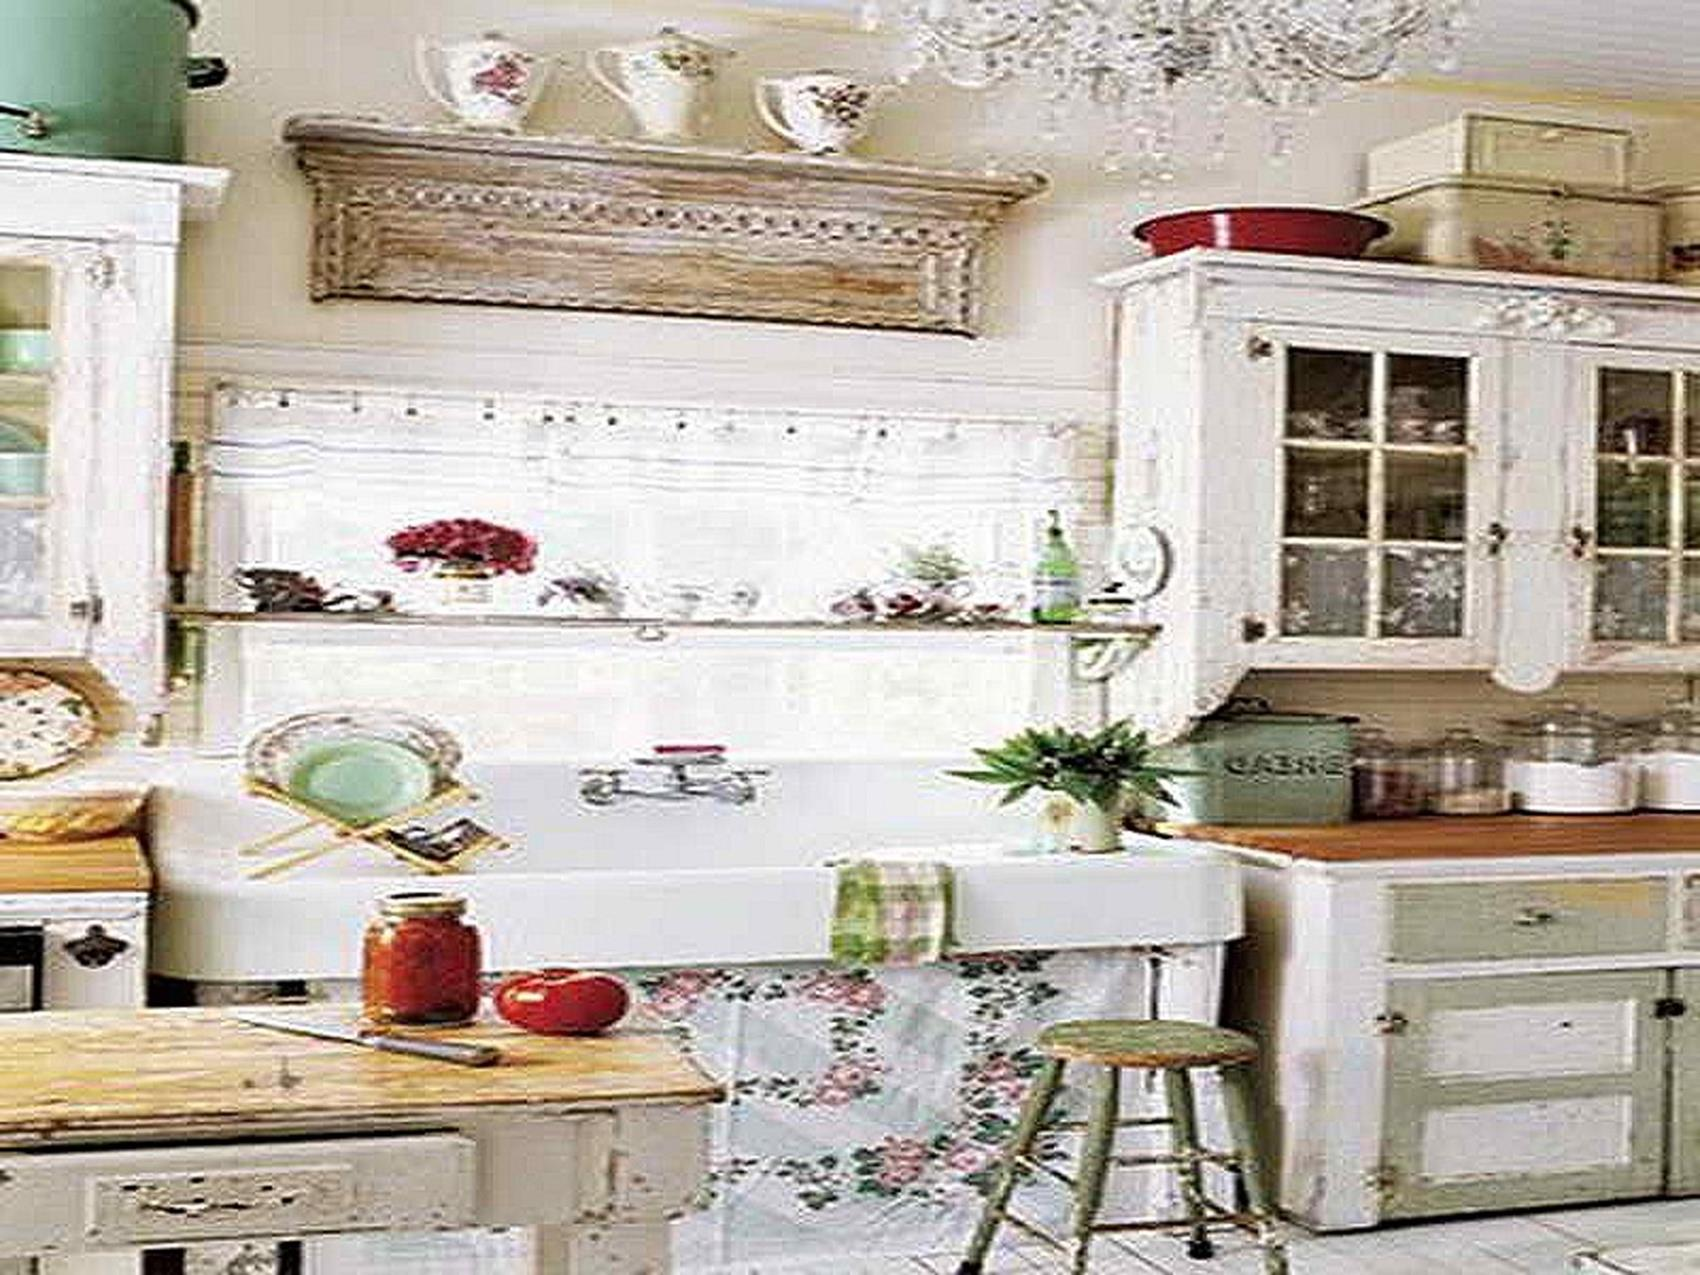 Country Kitchen Accessories and Decor Ideas 39